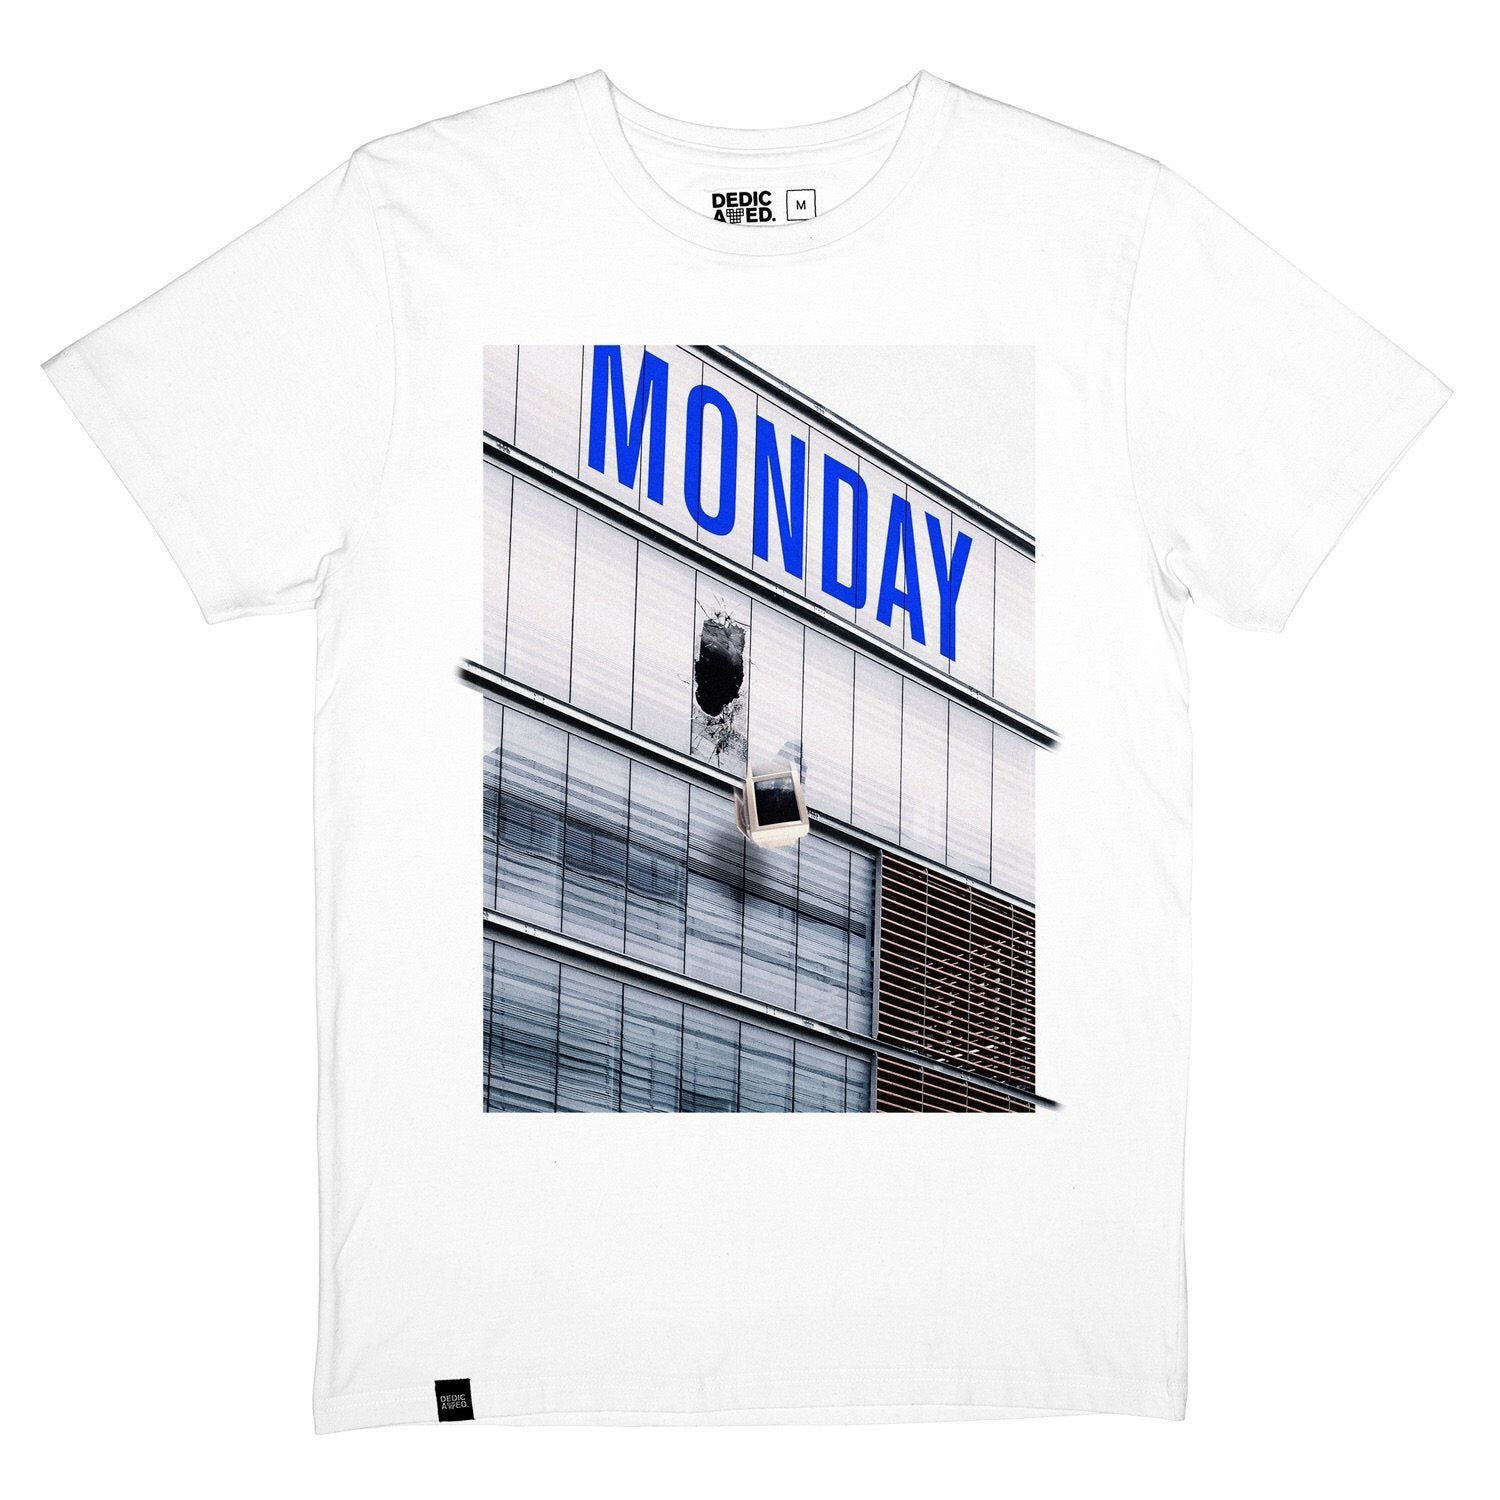 Stockholm: Monday Rage T-Shirt DEDICATED - der ZEITGEIST